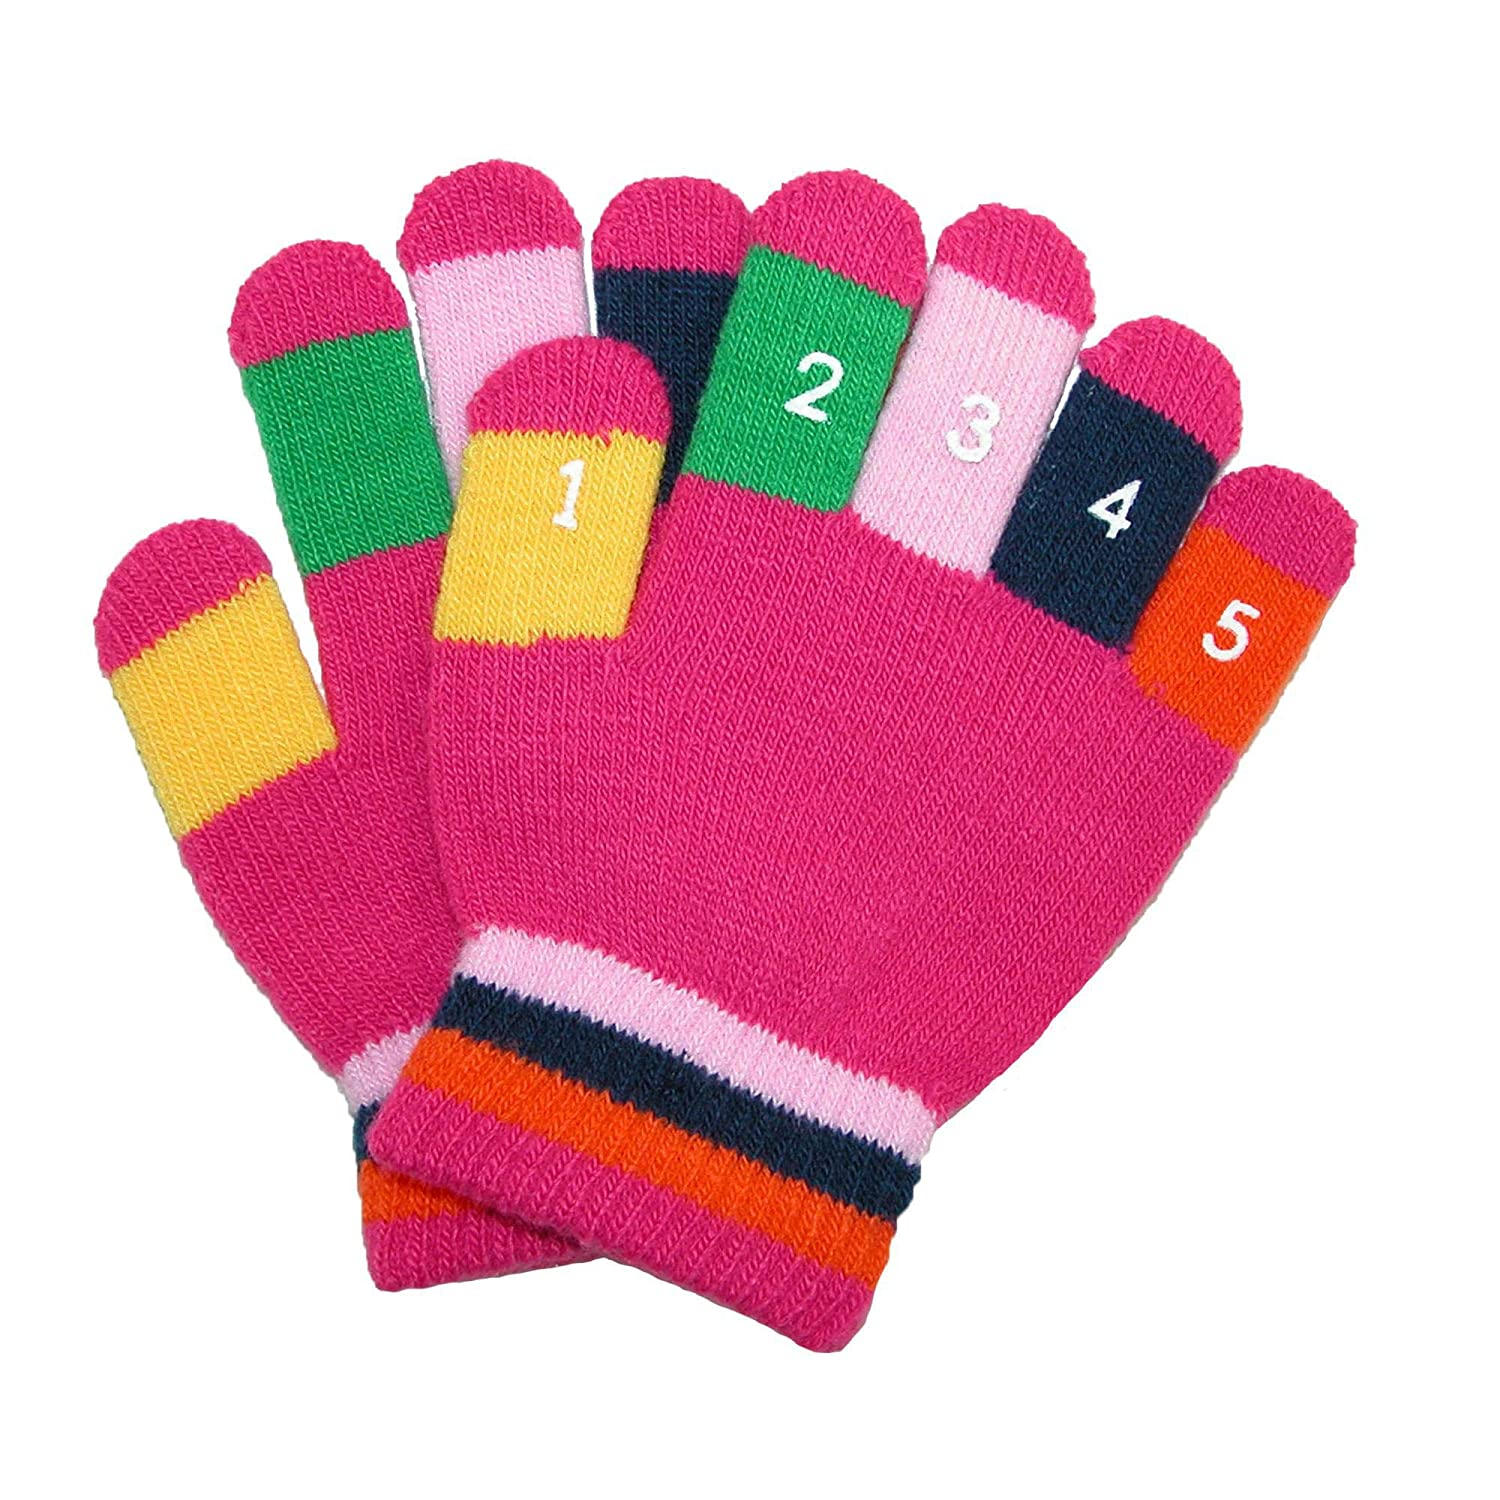 Grand Sierra Toddler 2-4T Knit Stretch Counting Gloves, Fuchsia